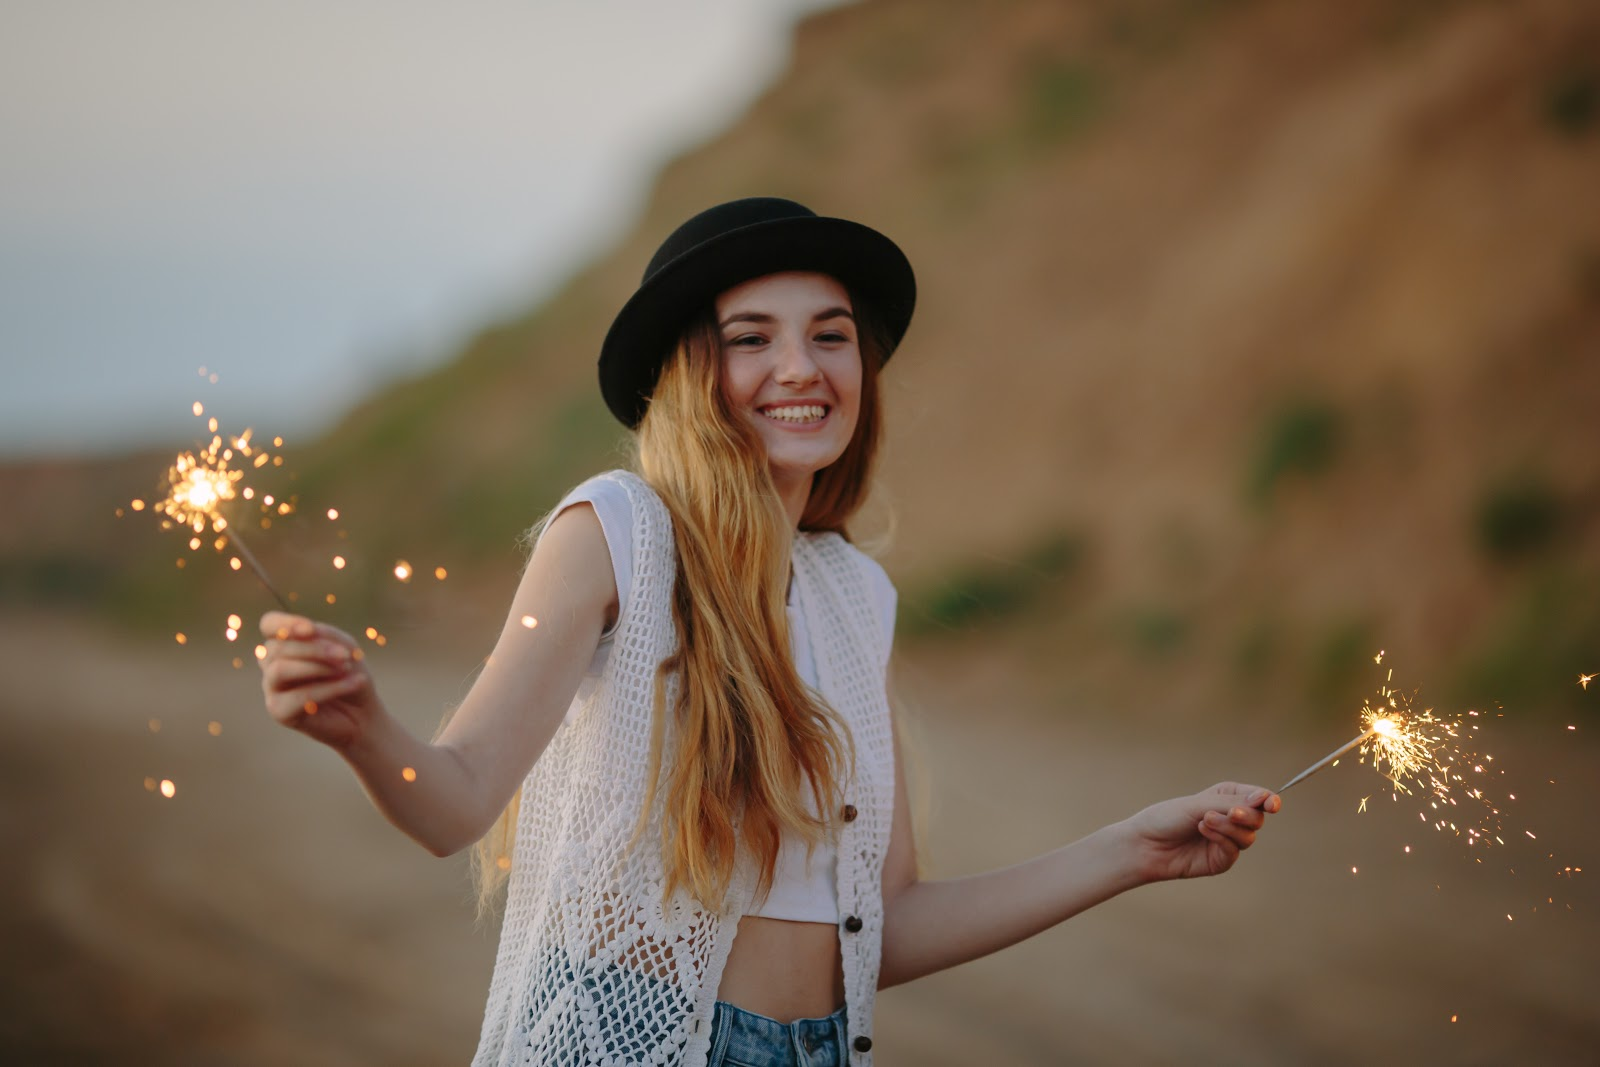 A young woman outside in the desert with sparklers